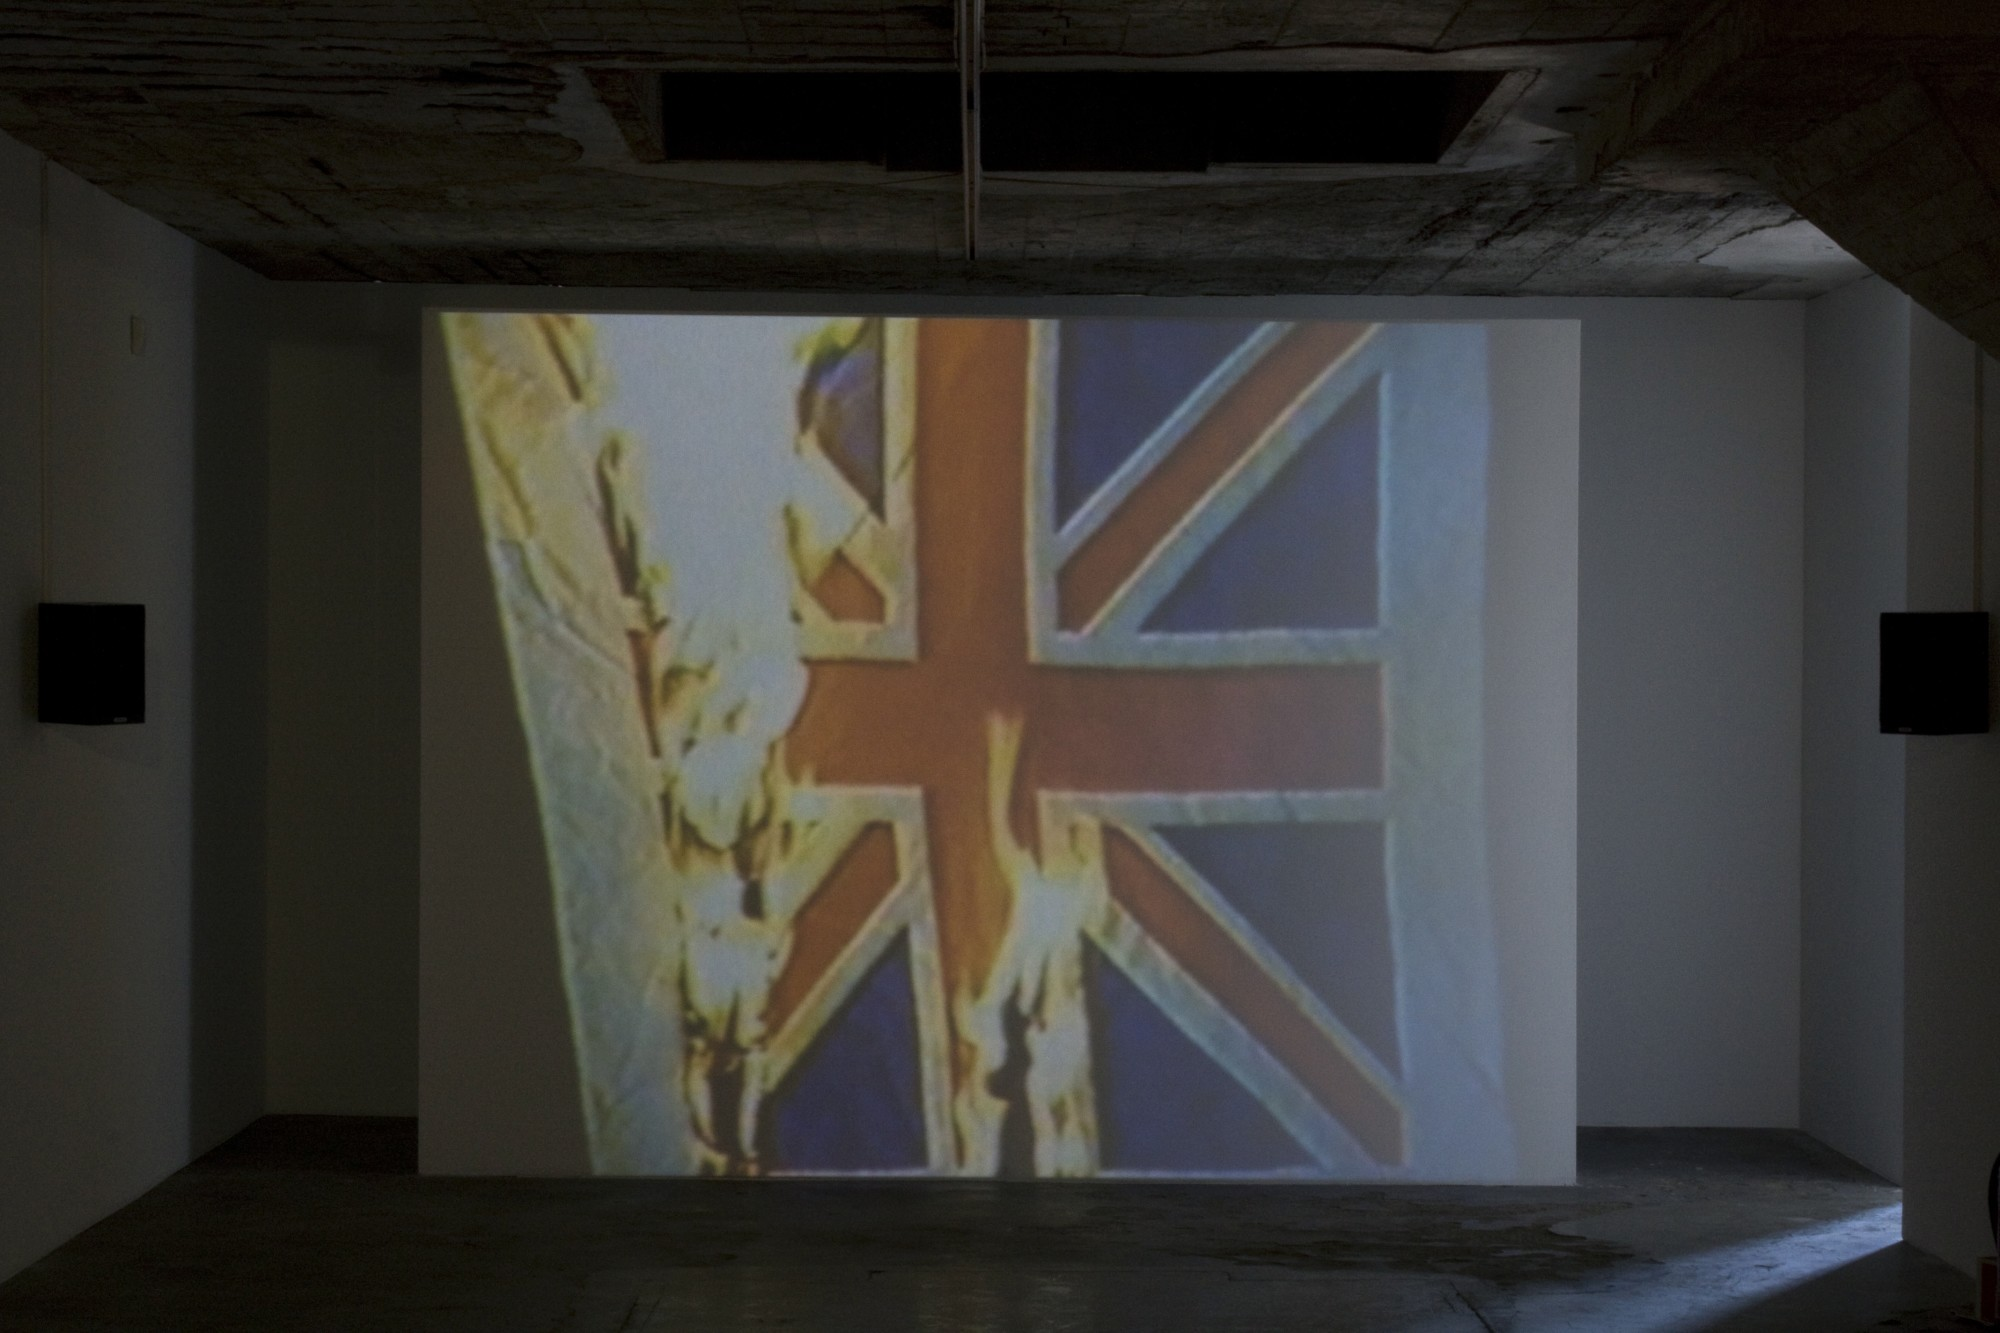 Grand National: Art From Britain. Vestfossen Kunstlaboratorium, Øvre Eiker, Norway, 2010  24'06'', single-screen projection, 16mm film transferred to digital, colour, sound